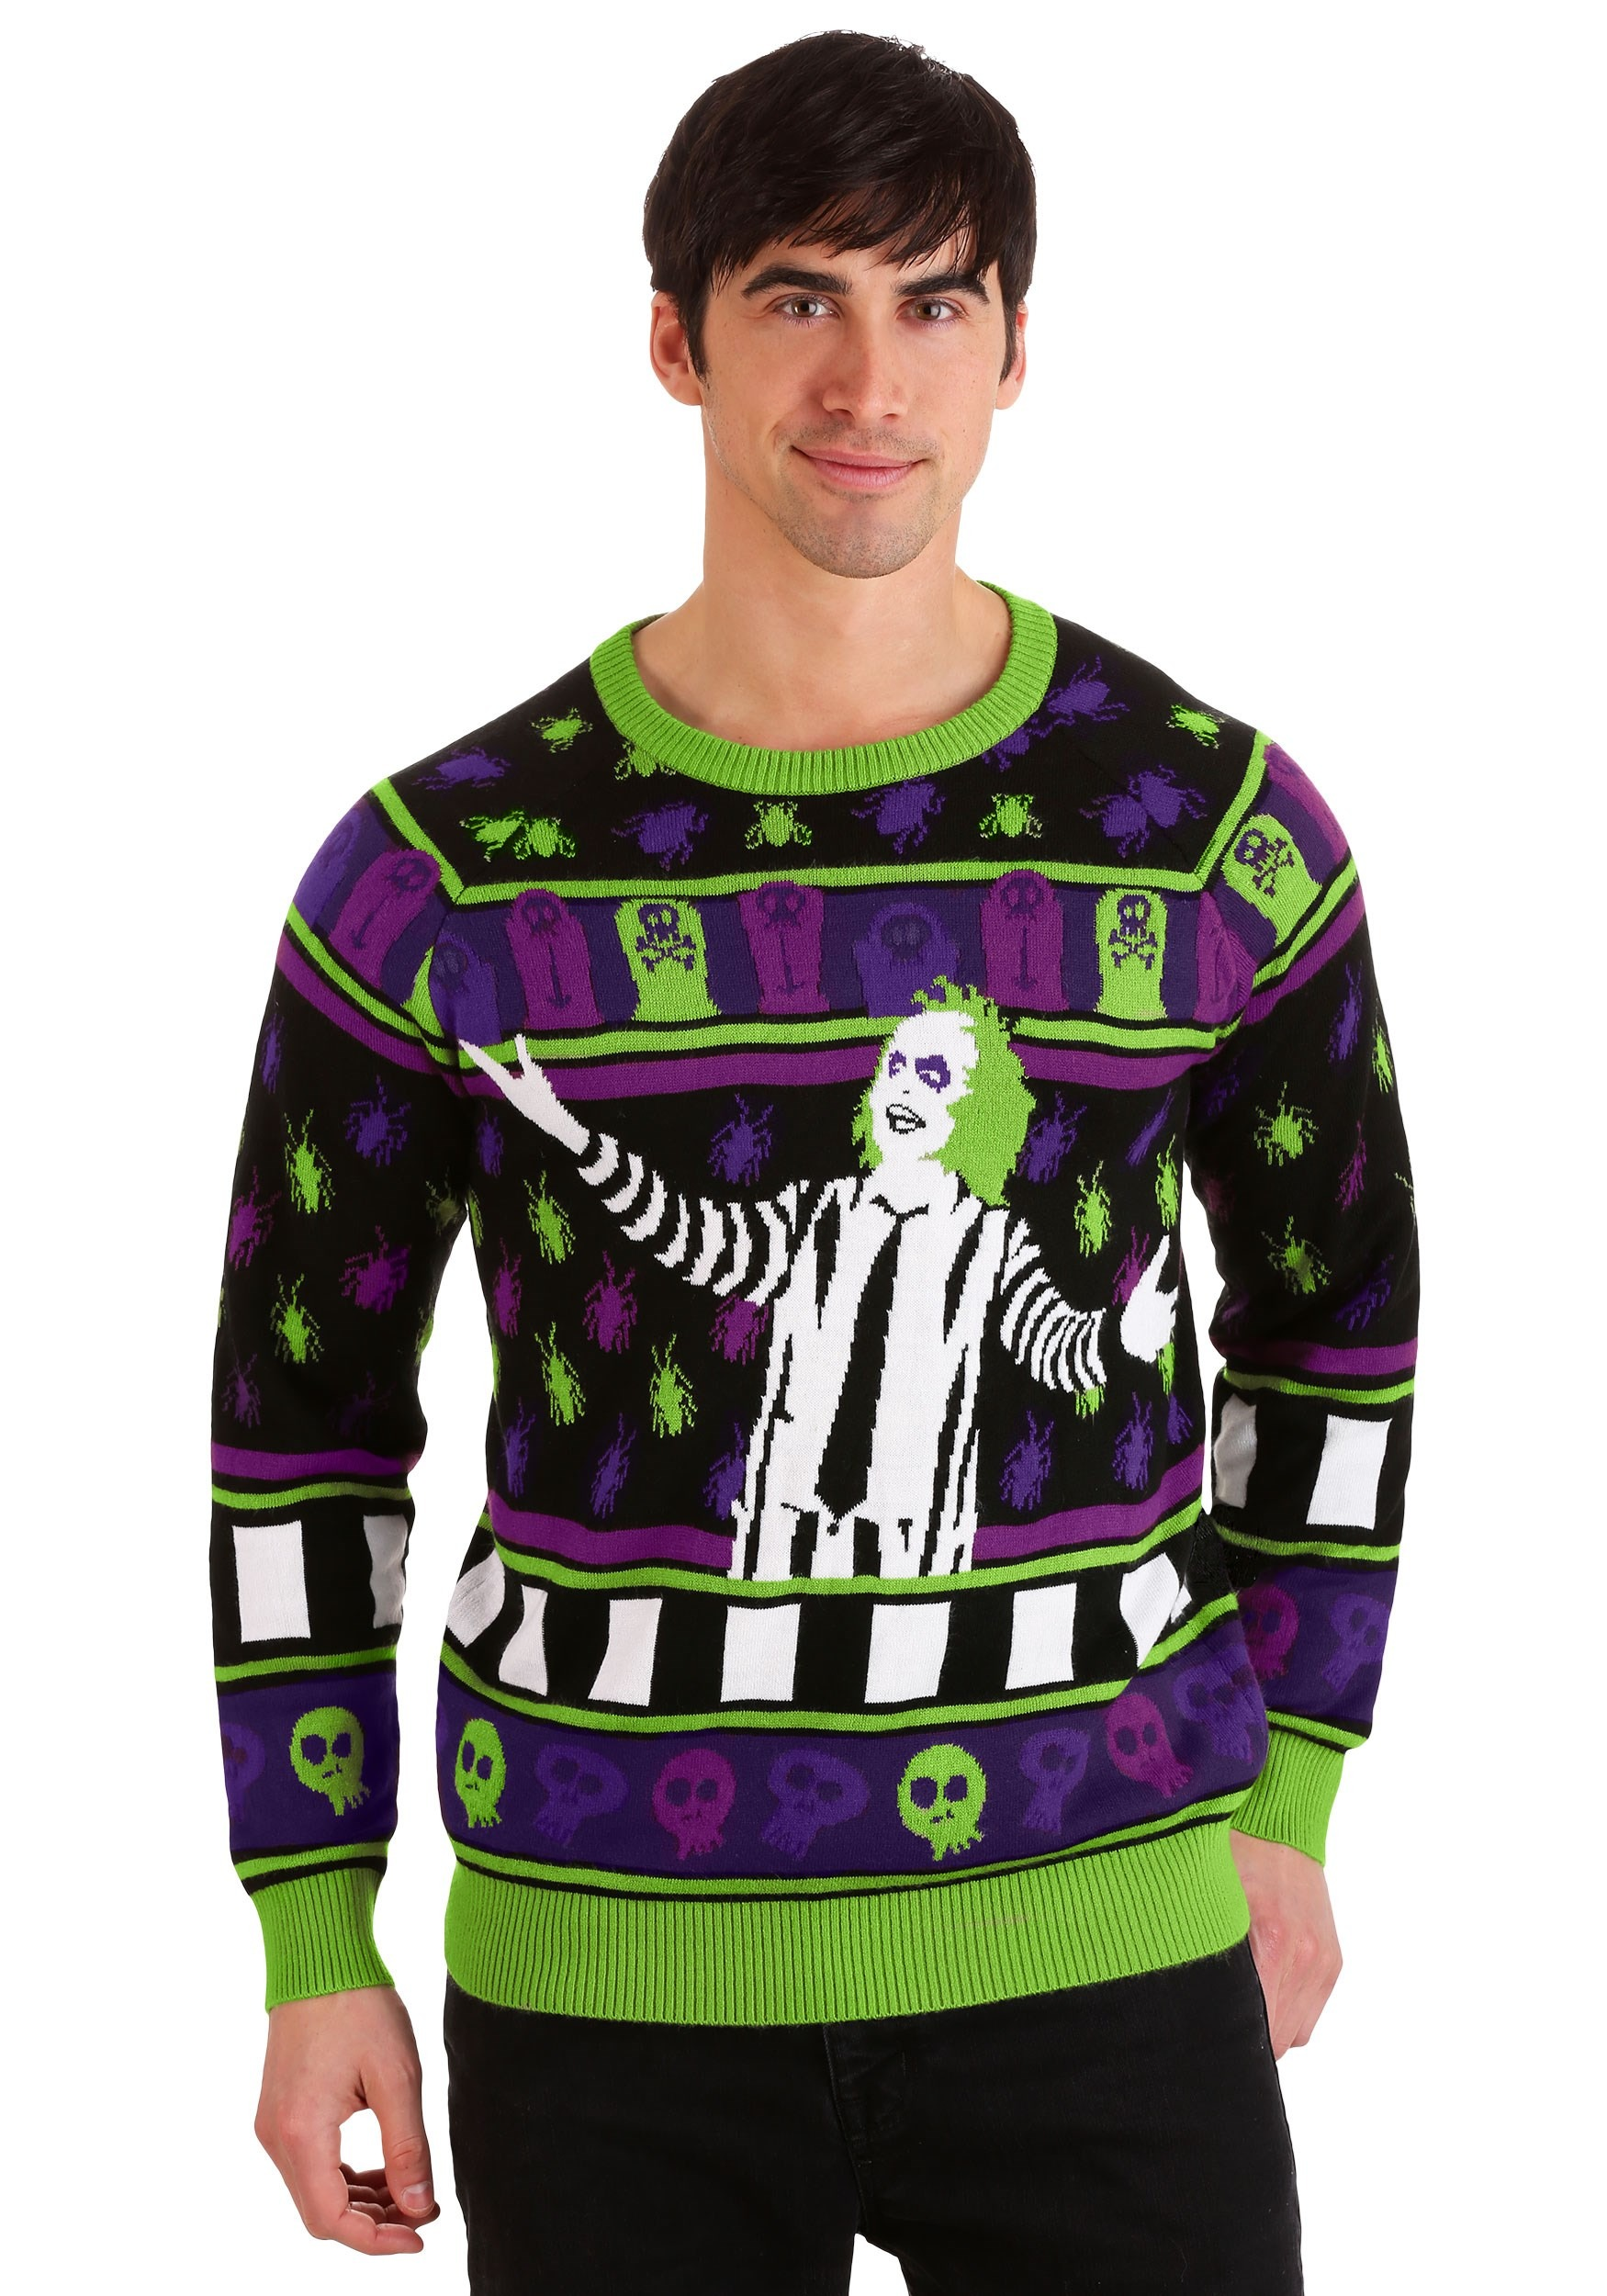 Beetlejuice It's Showtime! Ugly Halloween Sweater for Adults